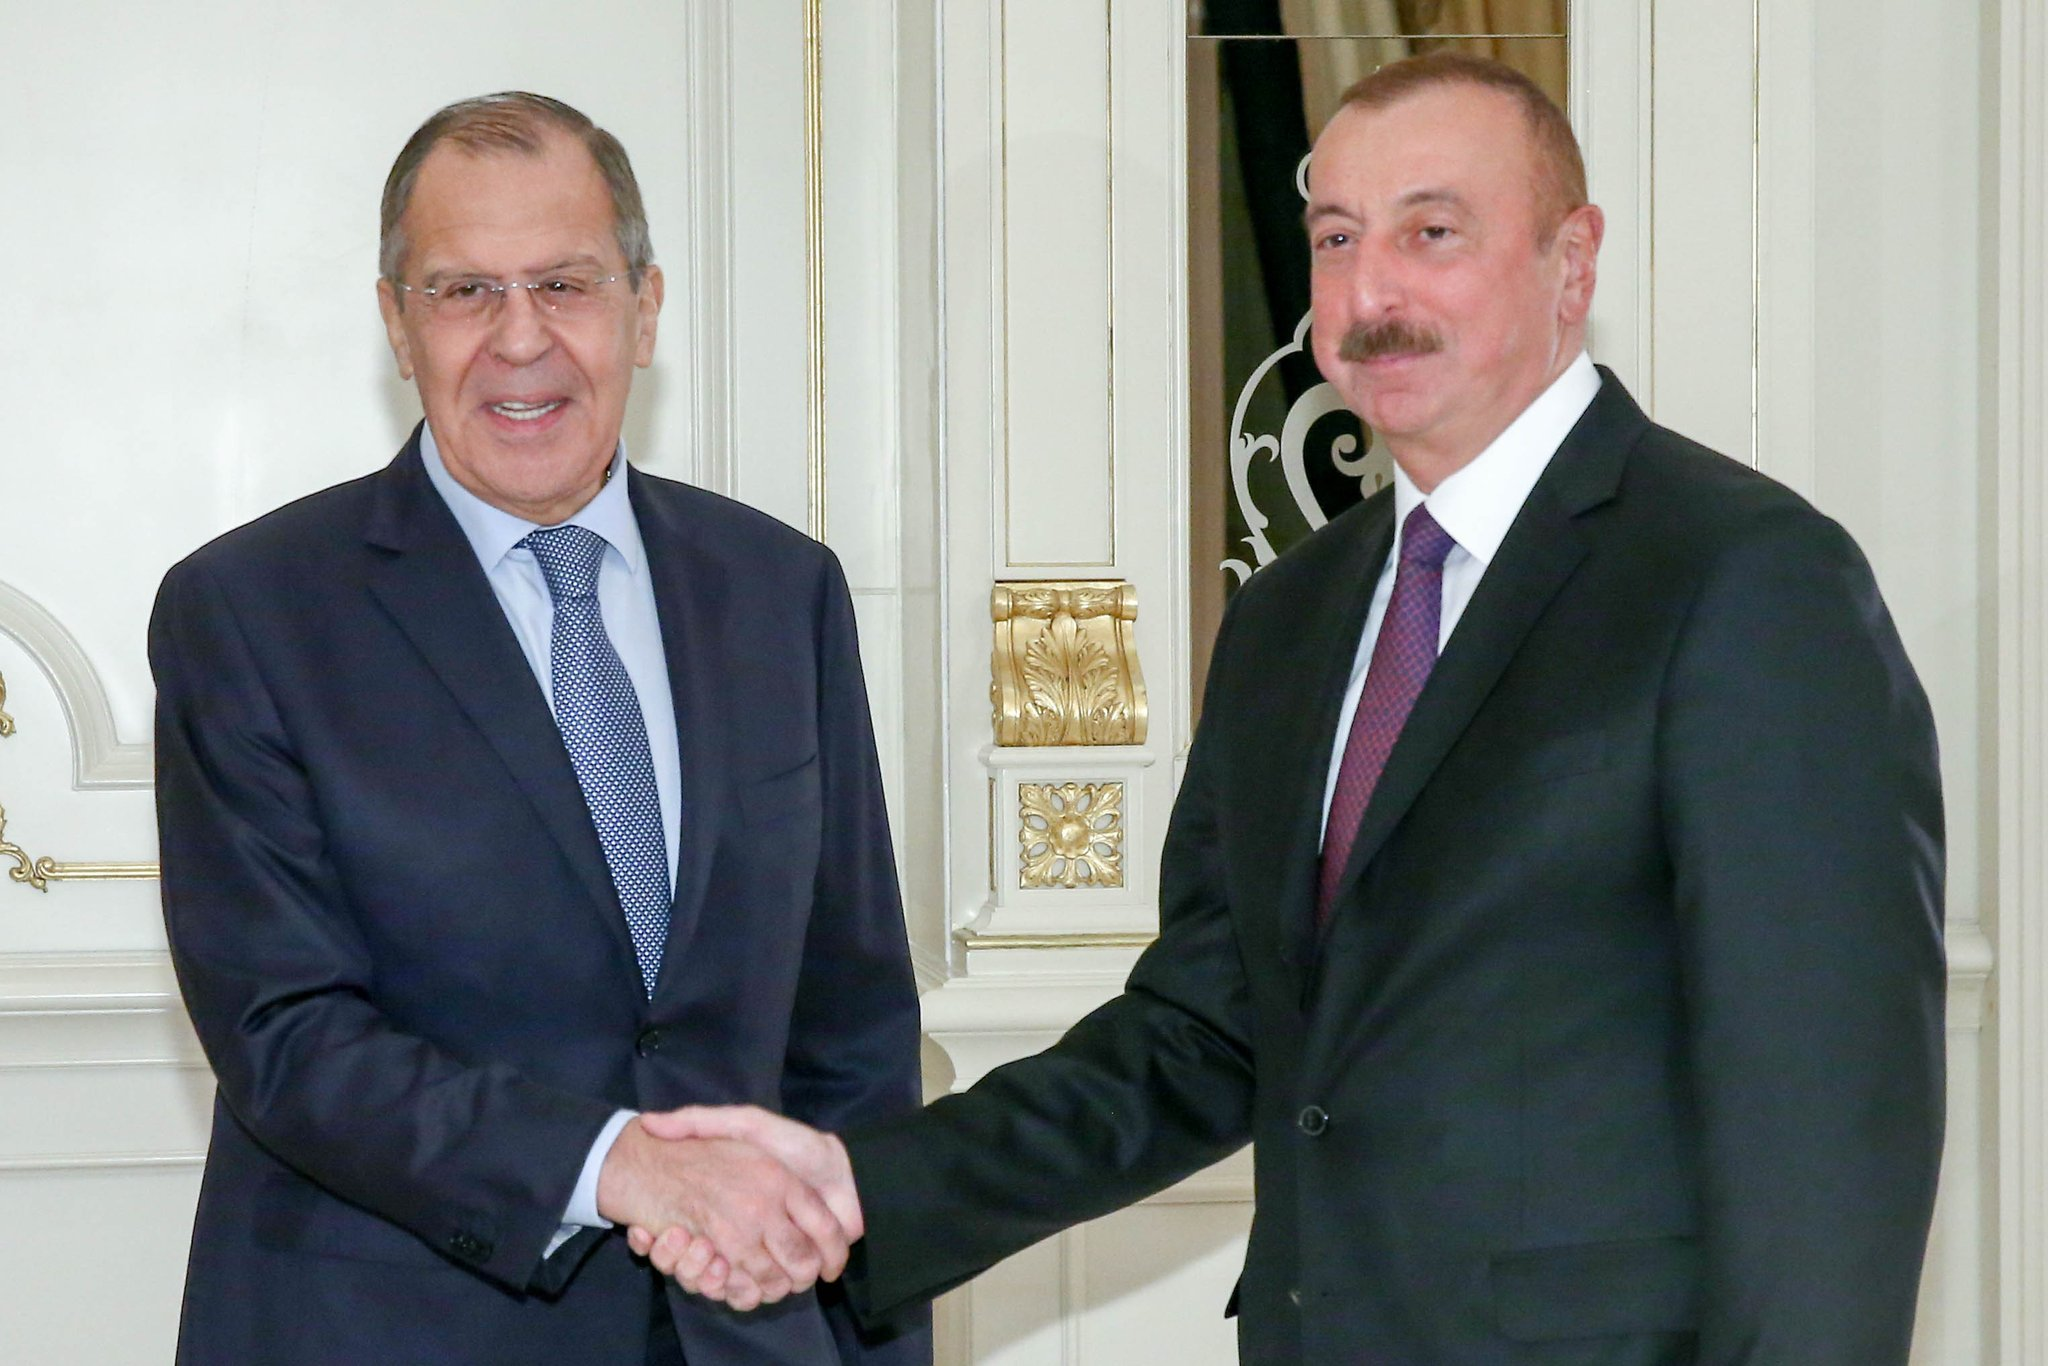 Mfa Russia On Twitter Russian Foreign Minister Sergey Lavrov Met With President Of Azerbaijan Ilham Aliyev In Baku Cooperation Economy Politics Culture Https T Co Lhaeff2koz